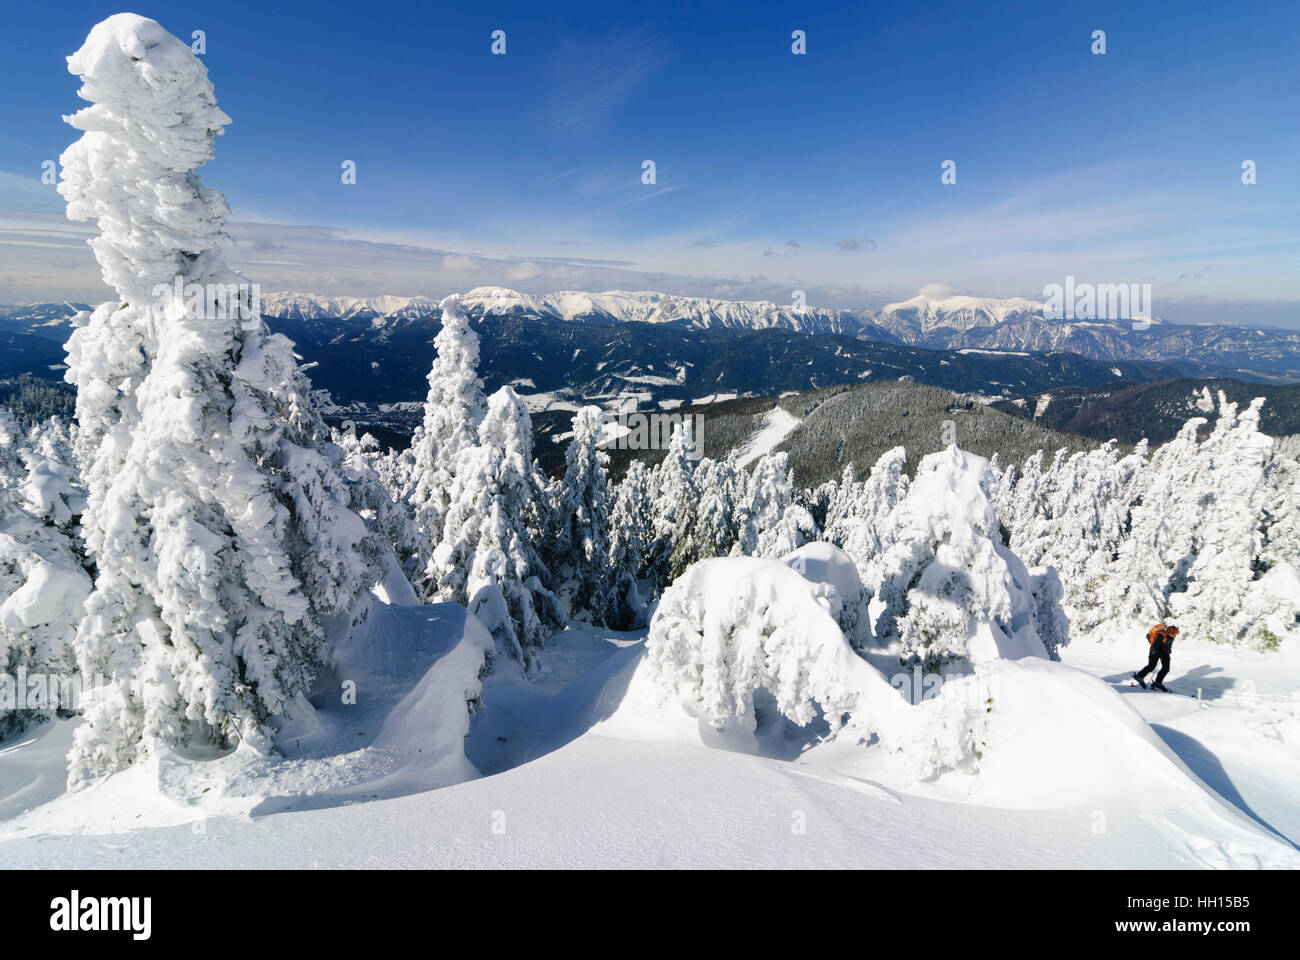 Spital am Semmering: Common spruces (Picea abies) before mountain Raxalpe (on the left) and mountain Schneeberg - Stock Image